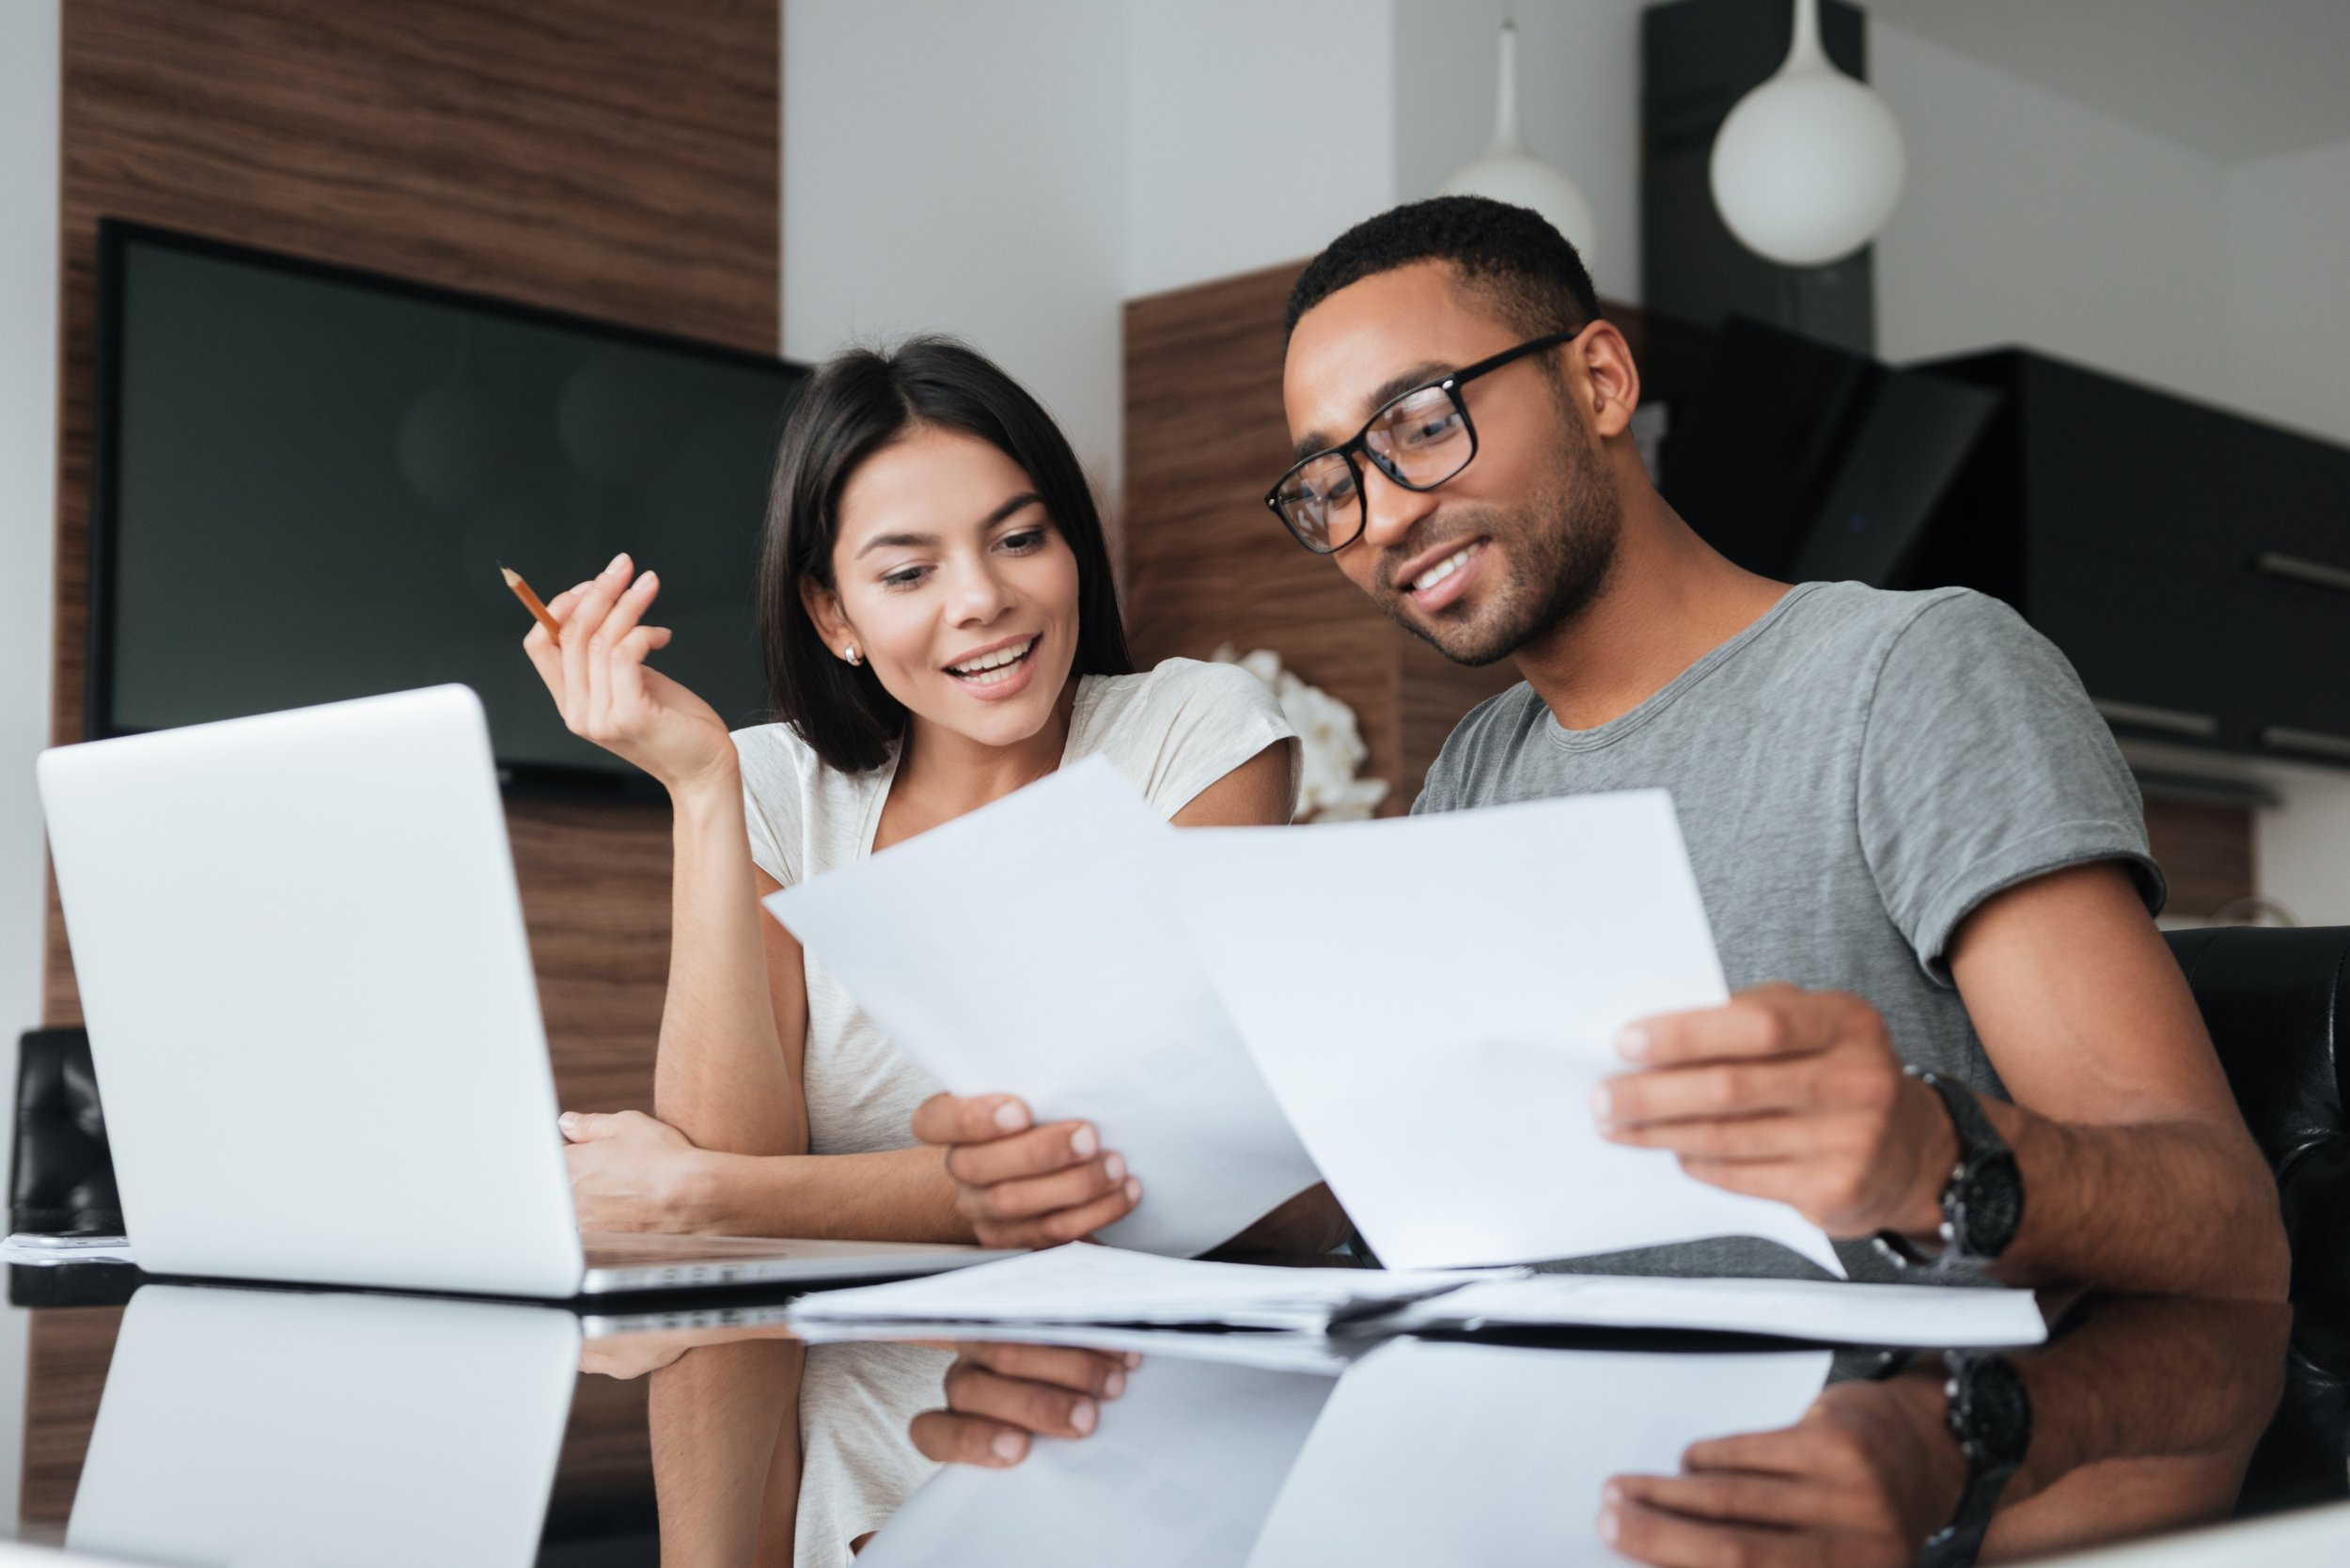 graphicstock-photo-of-cheerful-loving-young-couple-using-laptop-and-analyzing-their-finances-with-documents-look-at-papers_r8sI1YQ_hx.jpg